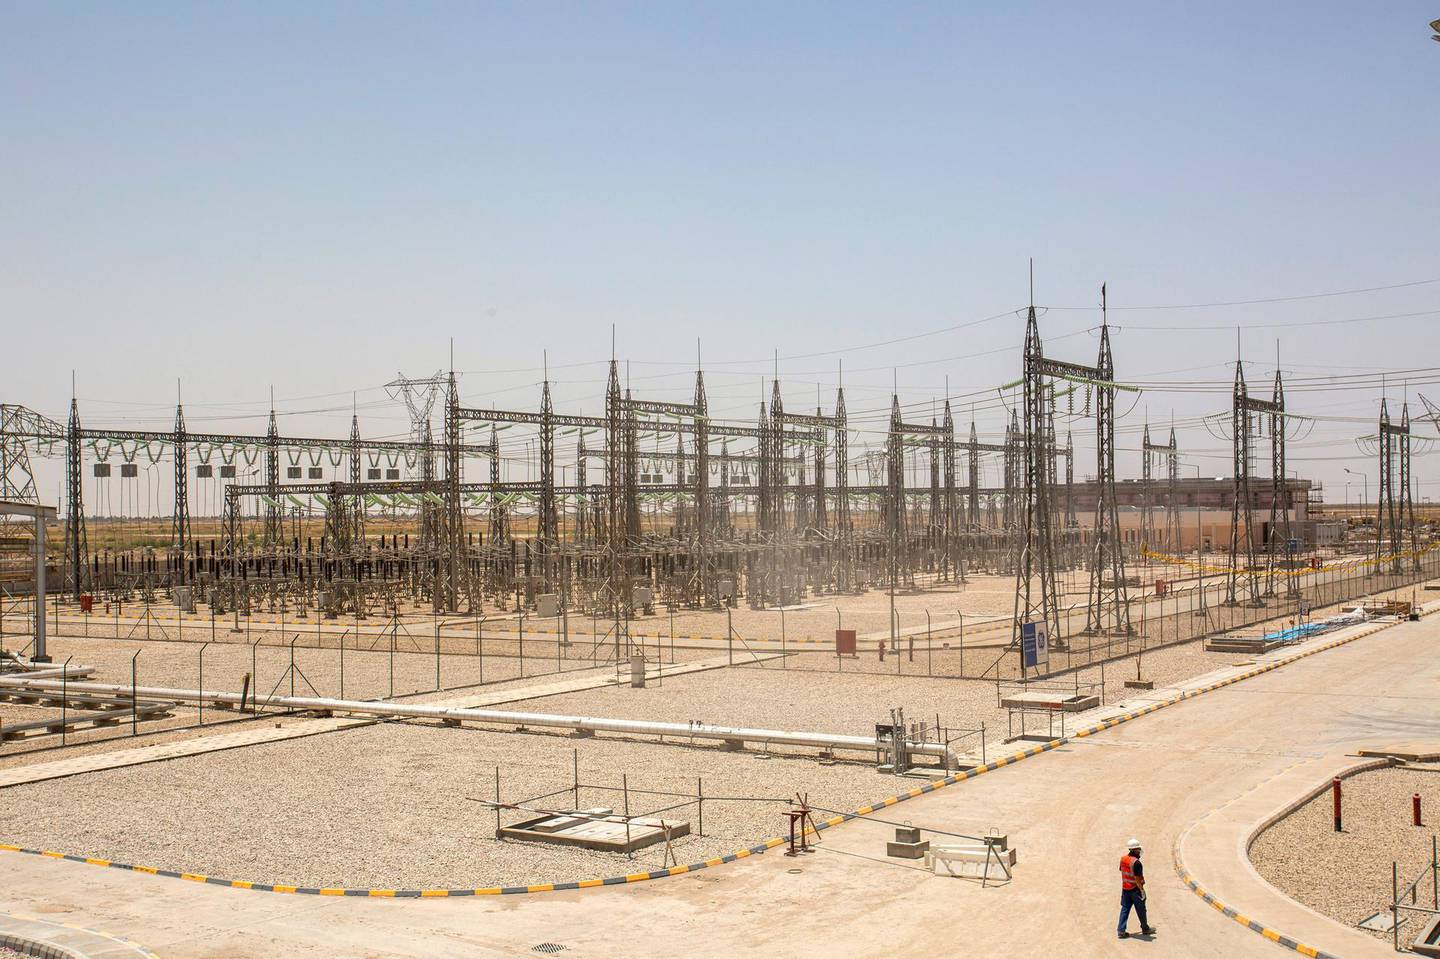 An employee walks the ground of the Dhi Qar Combined Cycle Power Plant near the Iraqi city of Nasiriyah on June 15, 2020. (Photo by Hussein FALEH / AFP)